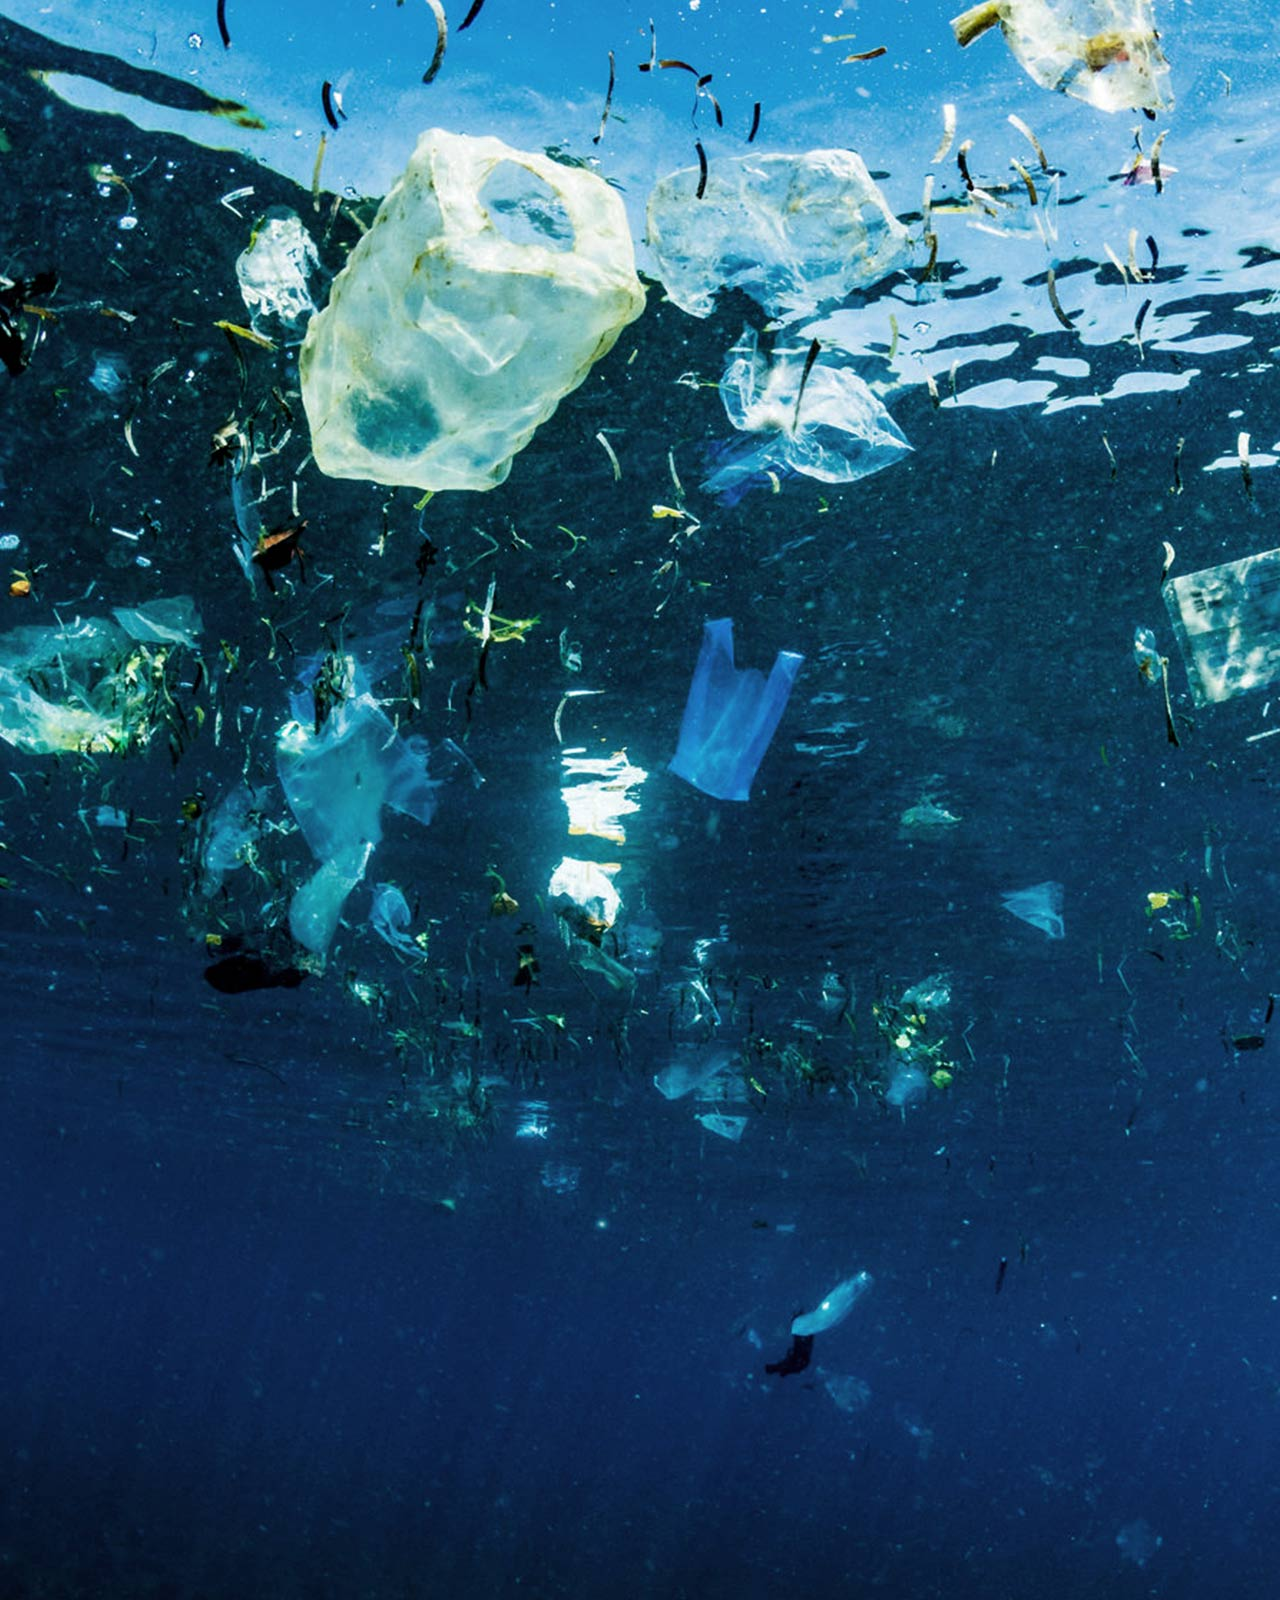 An image of plastic and trash polluting the ocean (something we'd never do!).